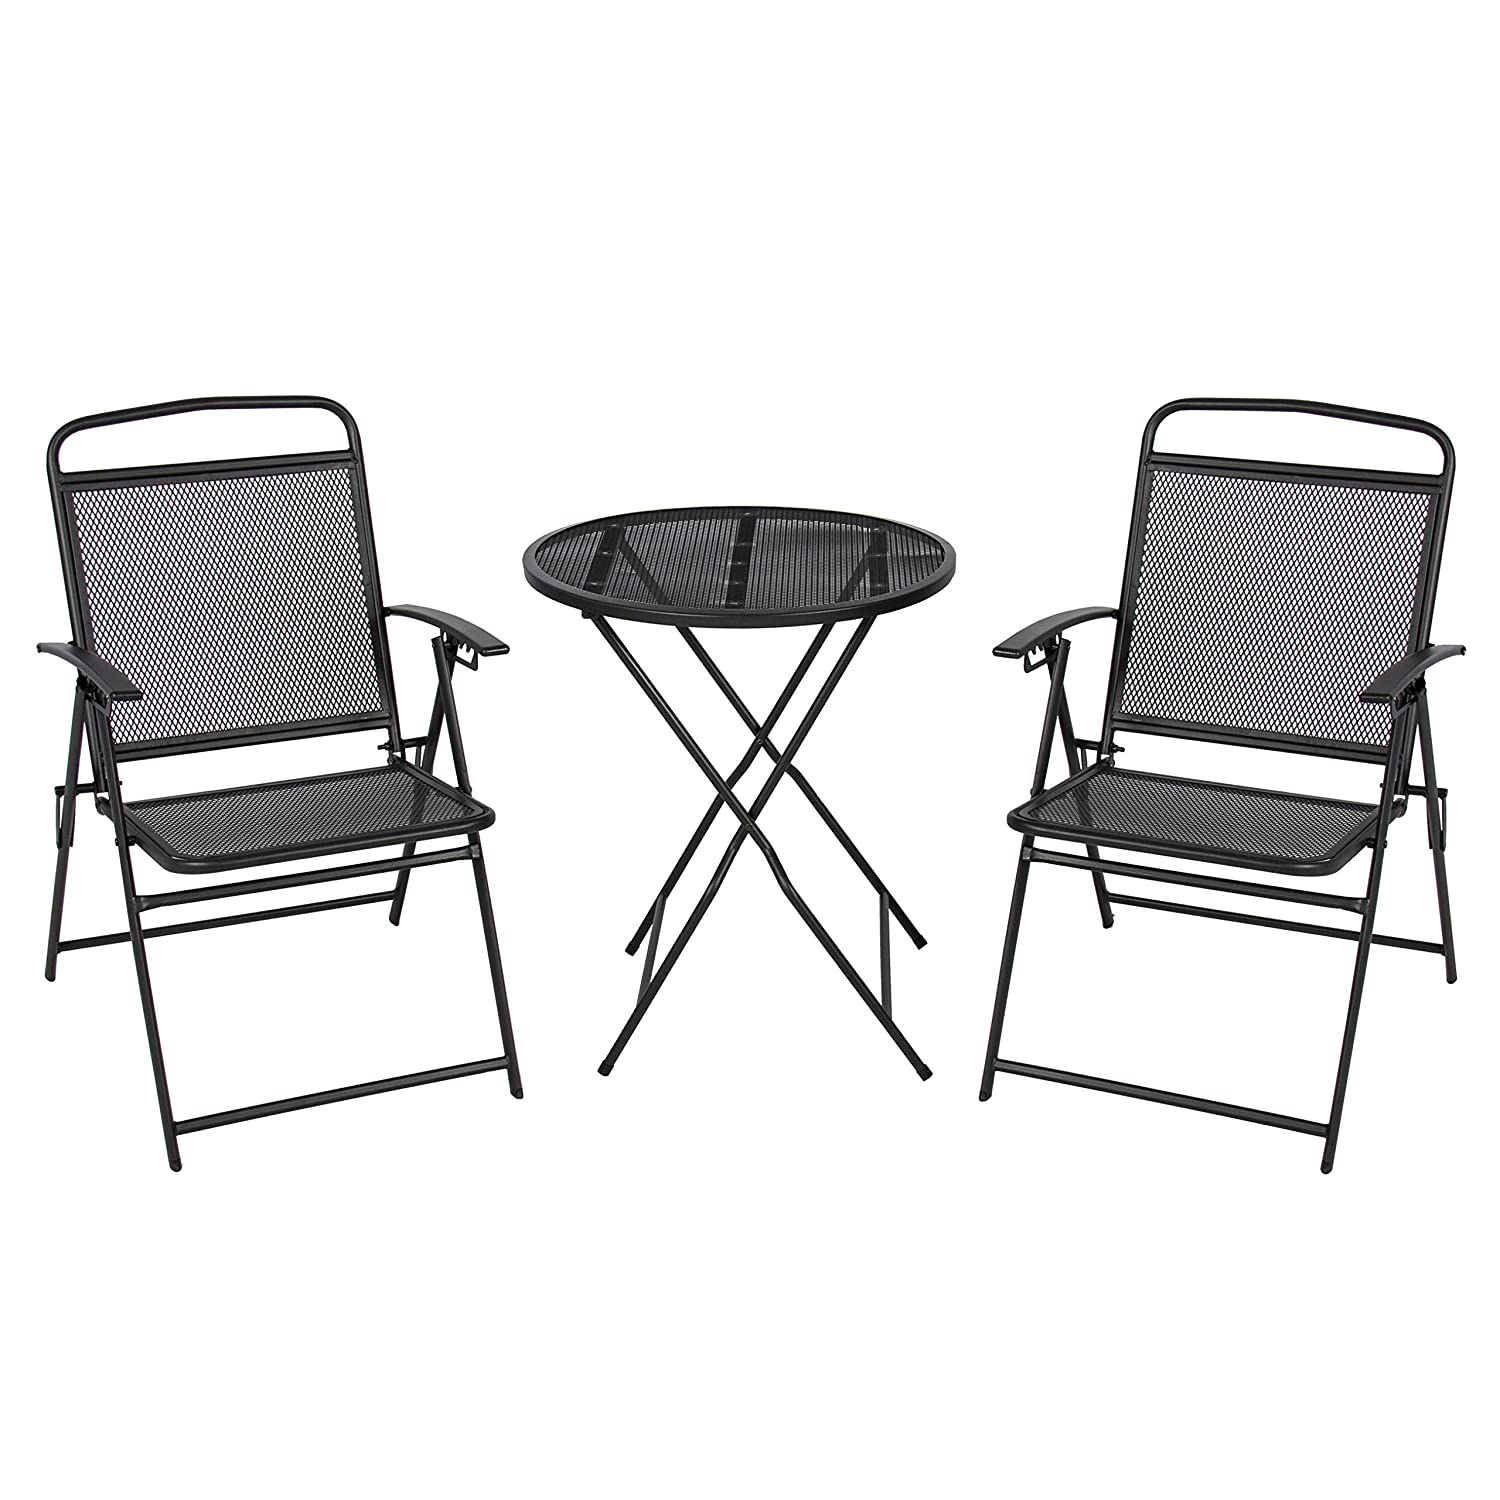 Amazoncom Best ChoiceProducts 3 Piece Patio Bistro Set Outdoor